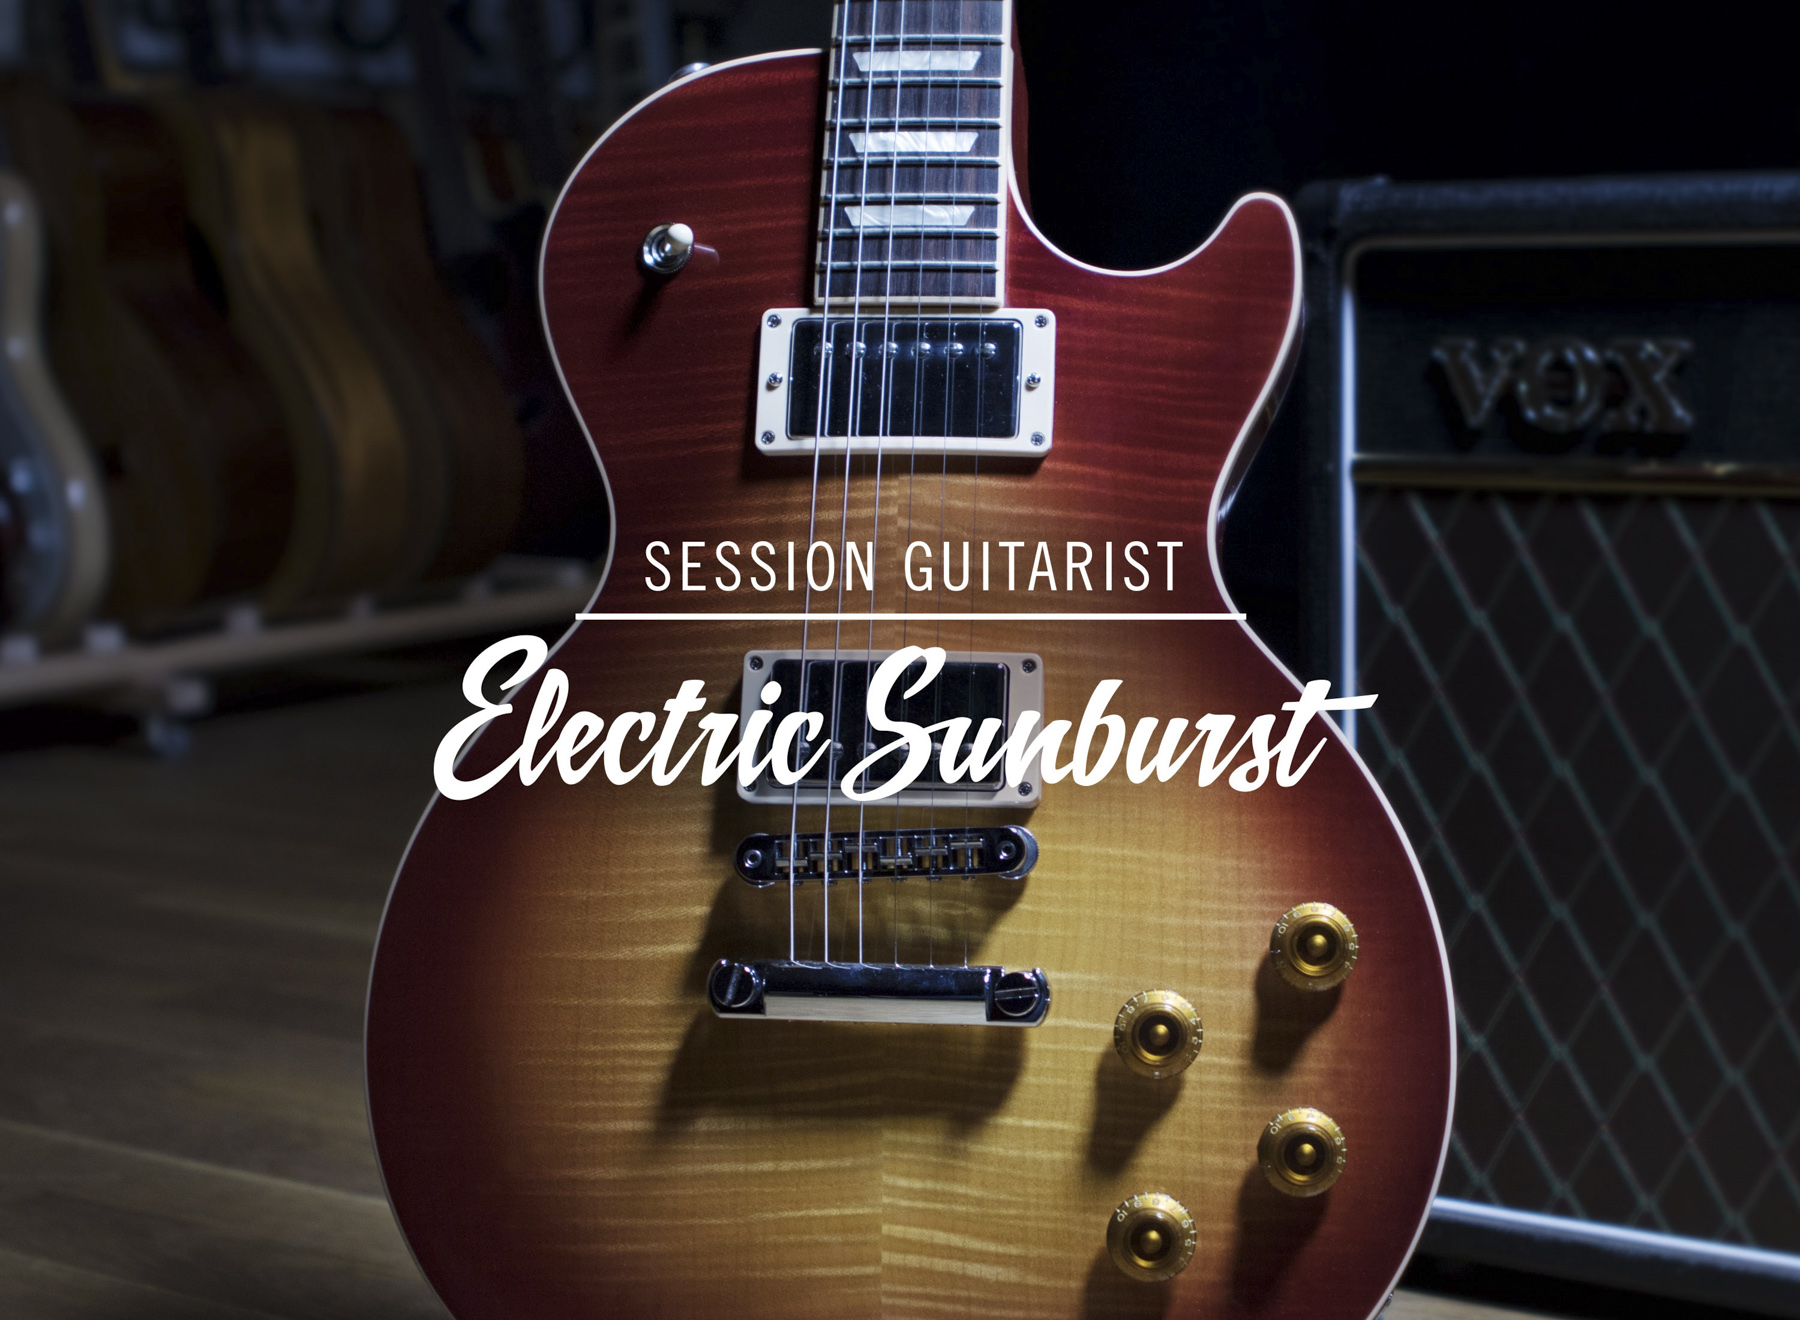 News: Native Instruments mit Instrument Session Guitarist Electric Sunburst und Genre-spezialisierten Sound-Paketen